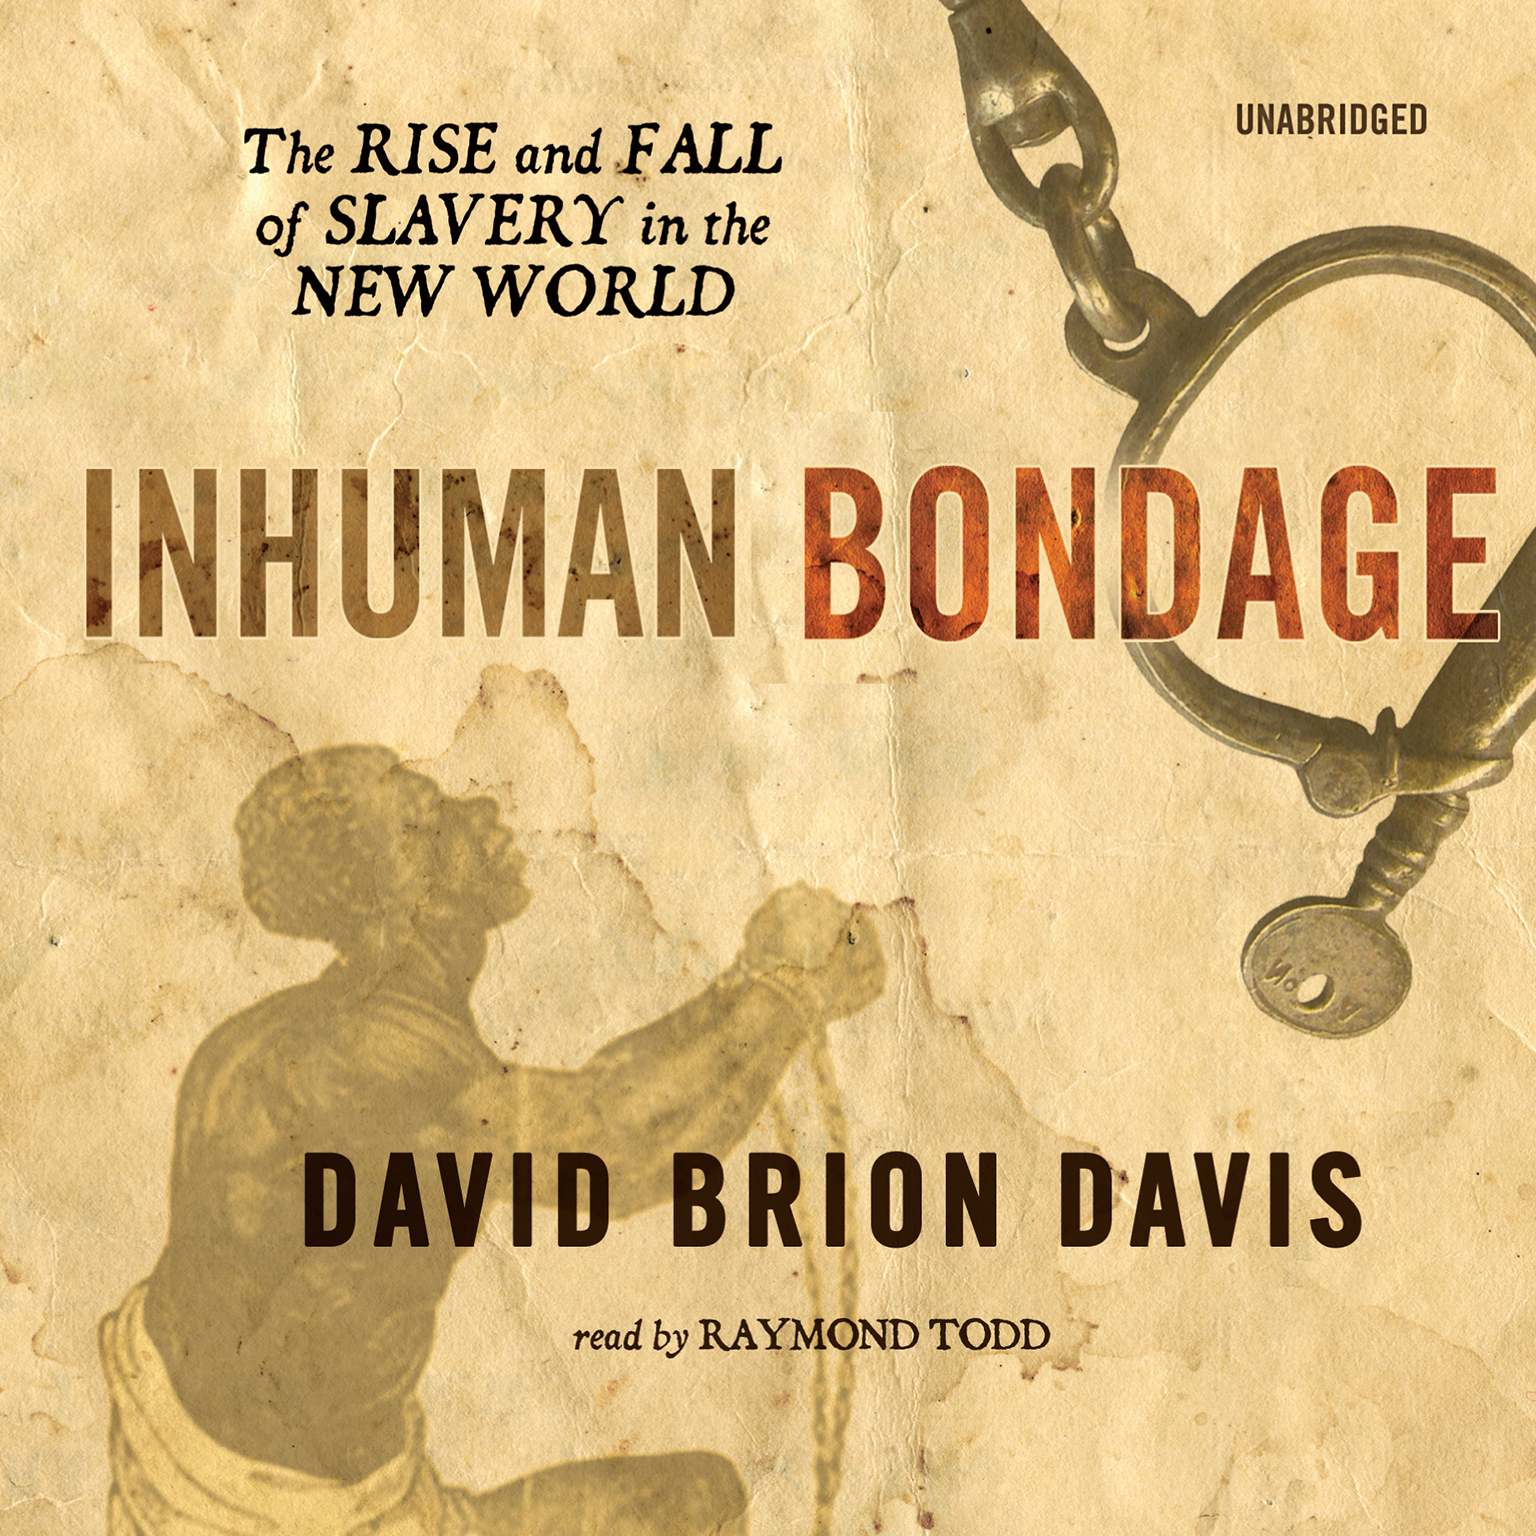 inhuman bondage Click to read more about inhuman bondage: the rise and fall of slavery in the new world by david brion davis librarything is a cataloging and social networking site.